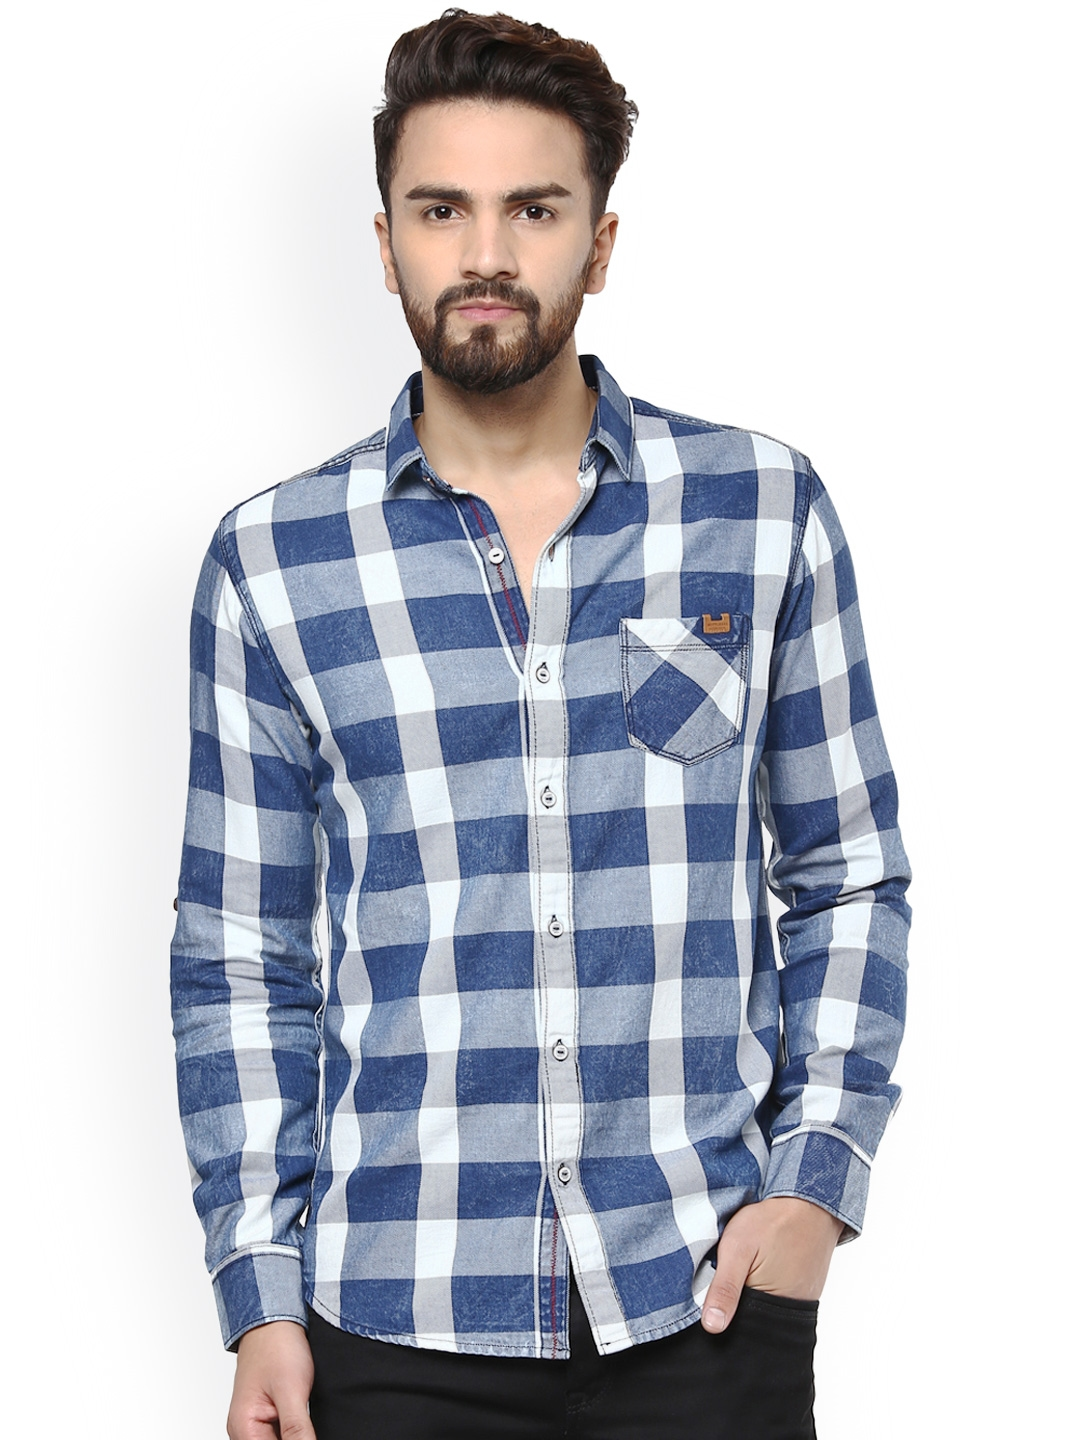 411866def9 Buy Mufti Men Blue   White Slim Fit Checked Casual Shirt - Shirts ...